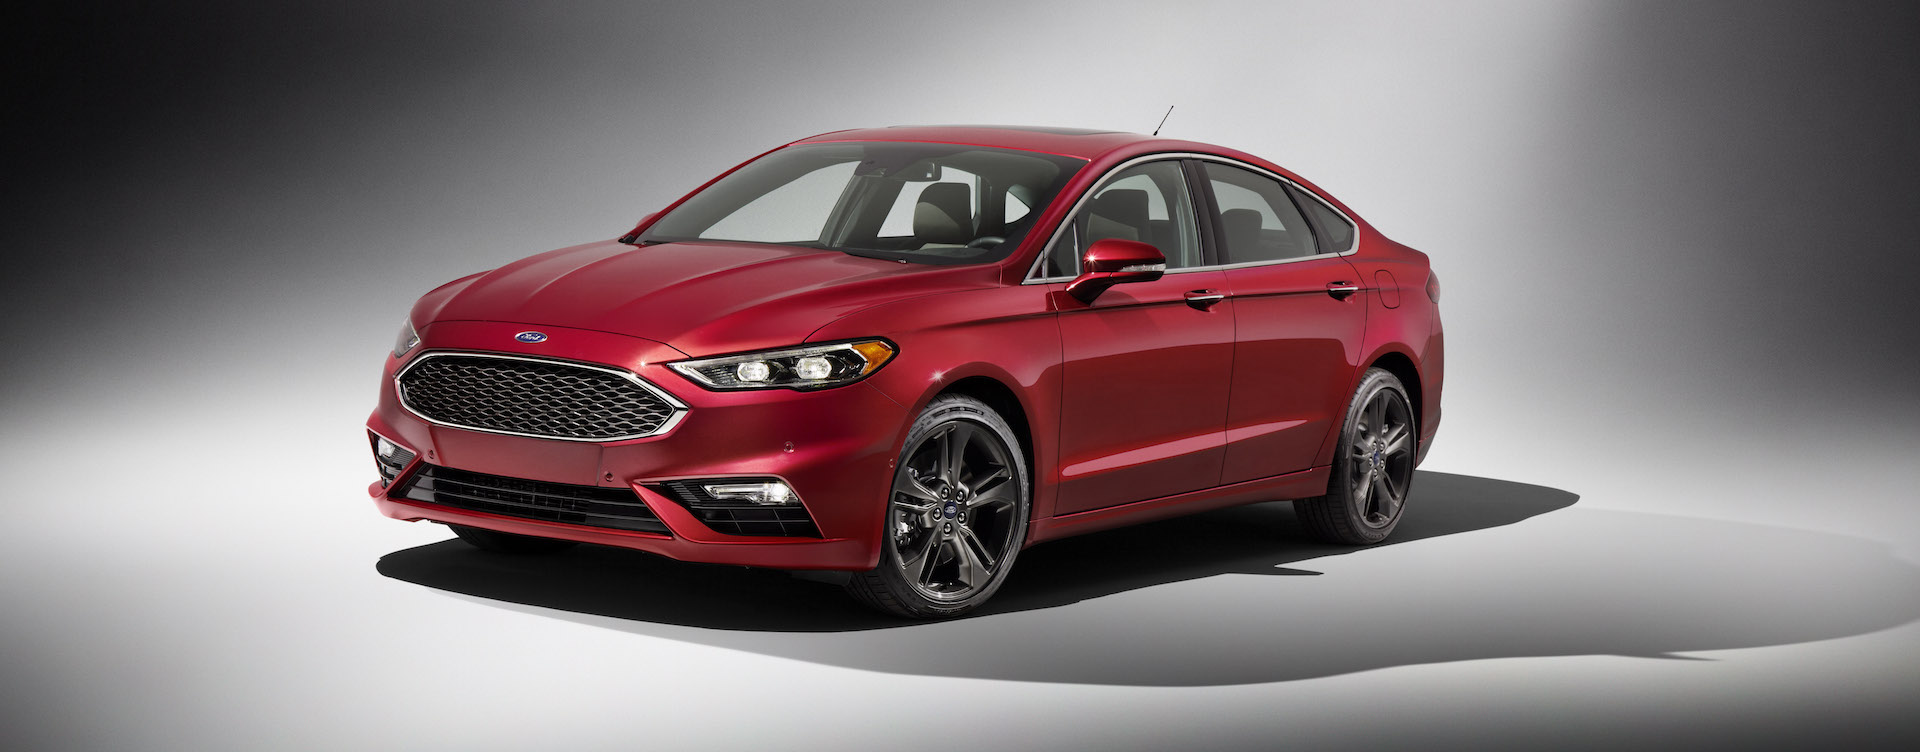 Toyota Fort Worth >> New and Used Ford Fusion: Prices, Photos, Reviews, Specs ...